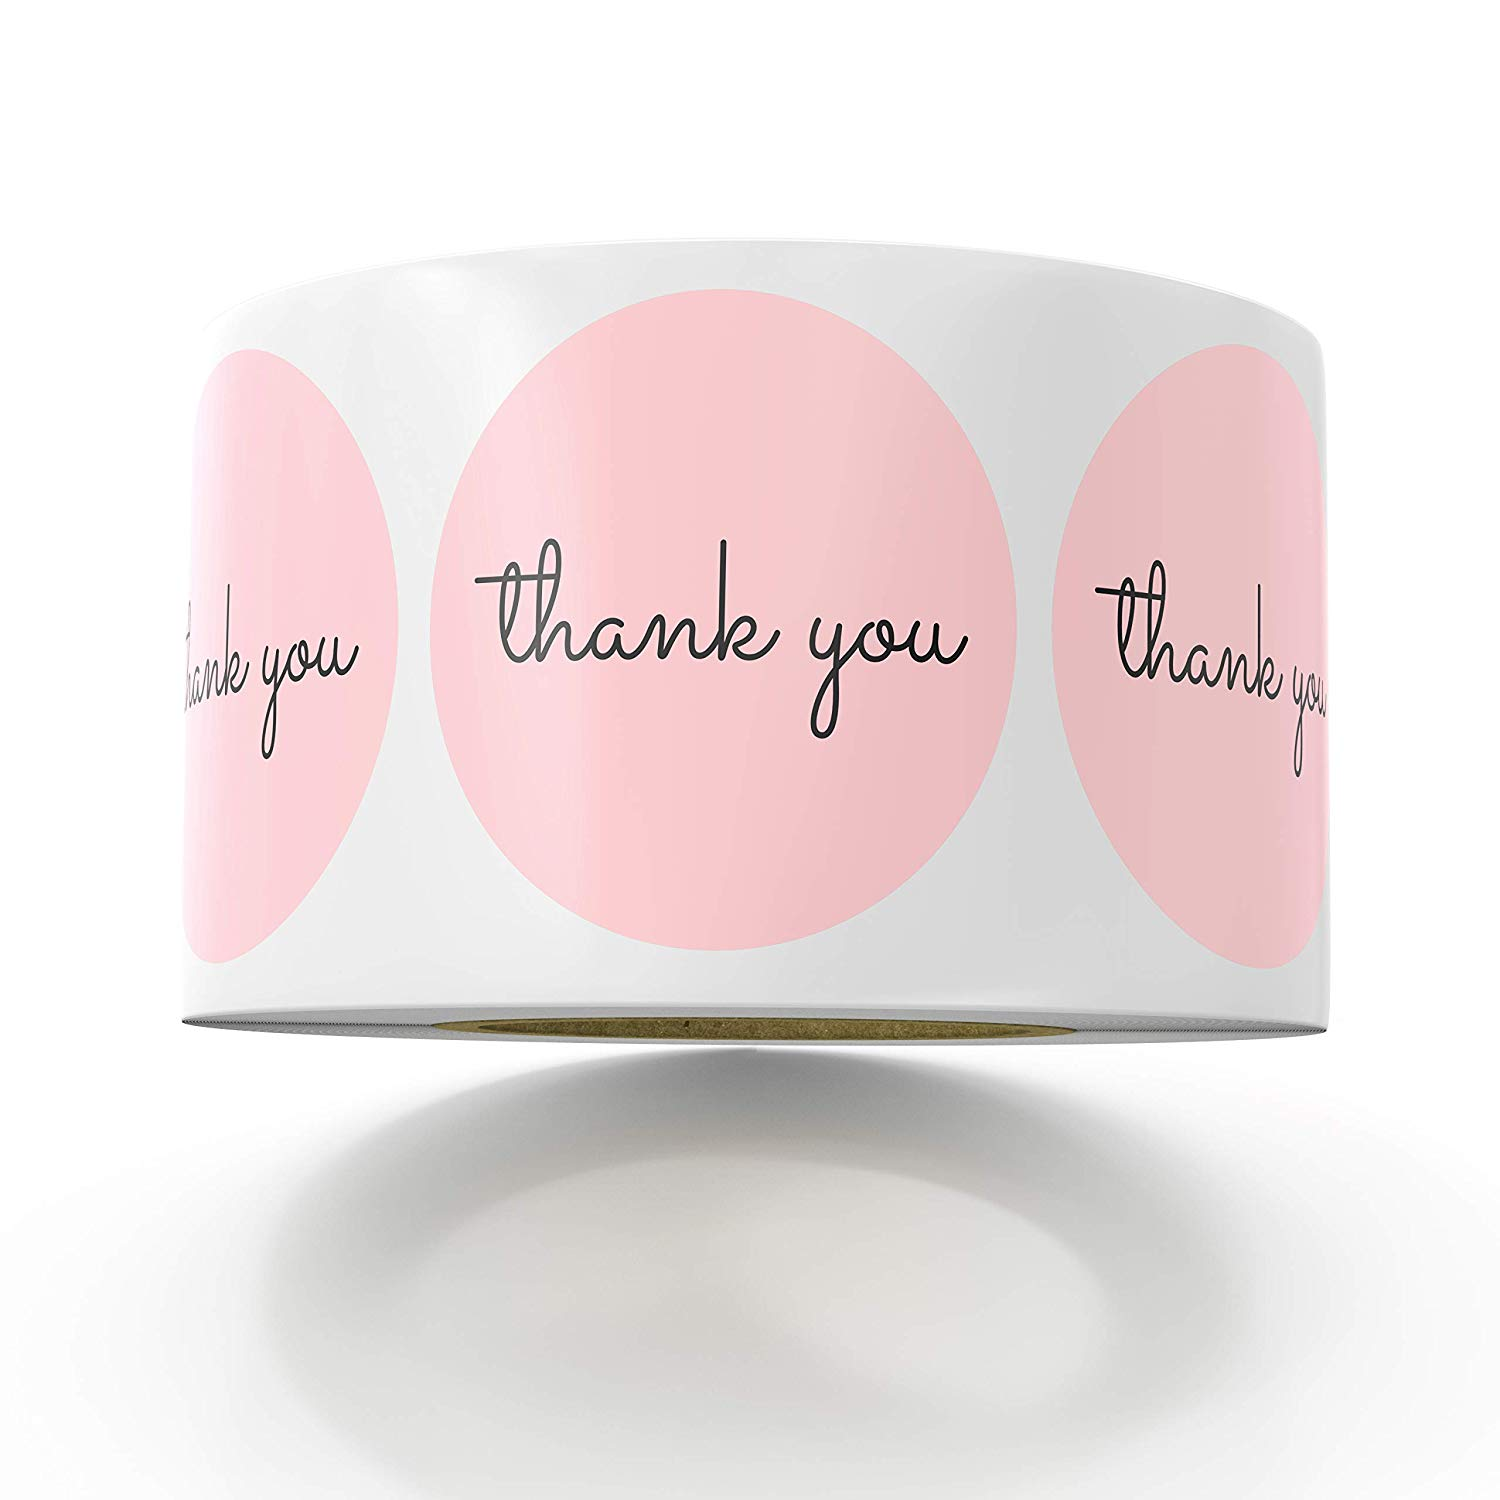 500pcs Thank You Stickers Pink Stickers For Company Giveaway & Birthday Party Favors Labels & Mailing Supplies 1inch